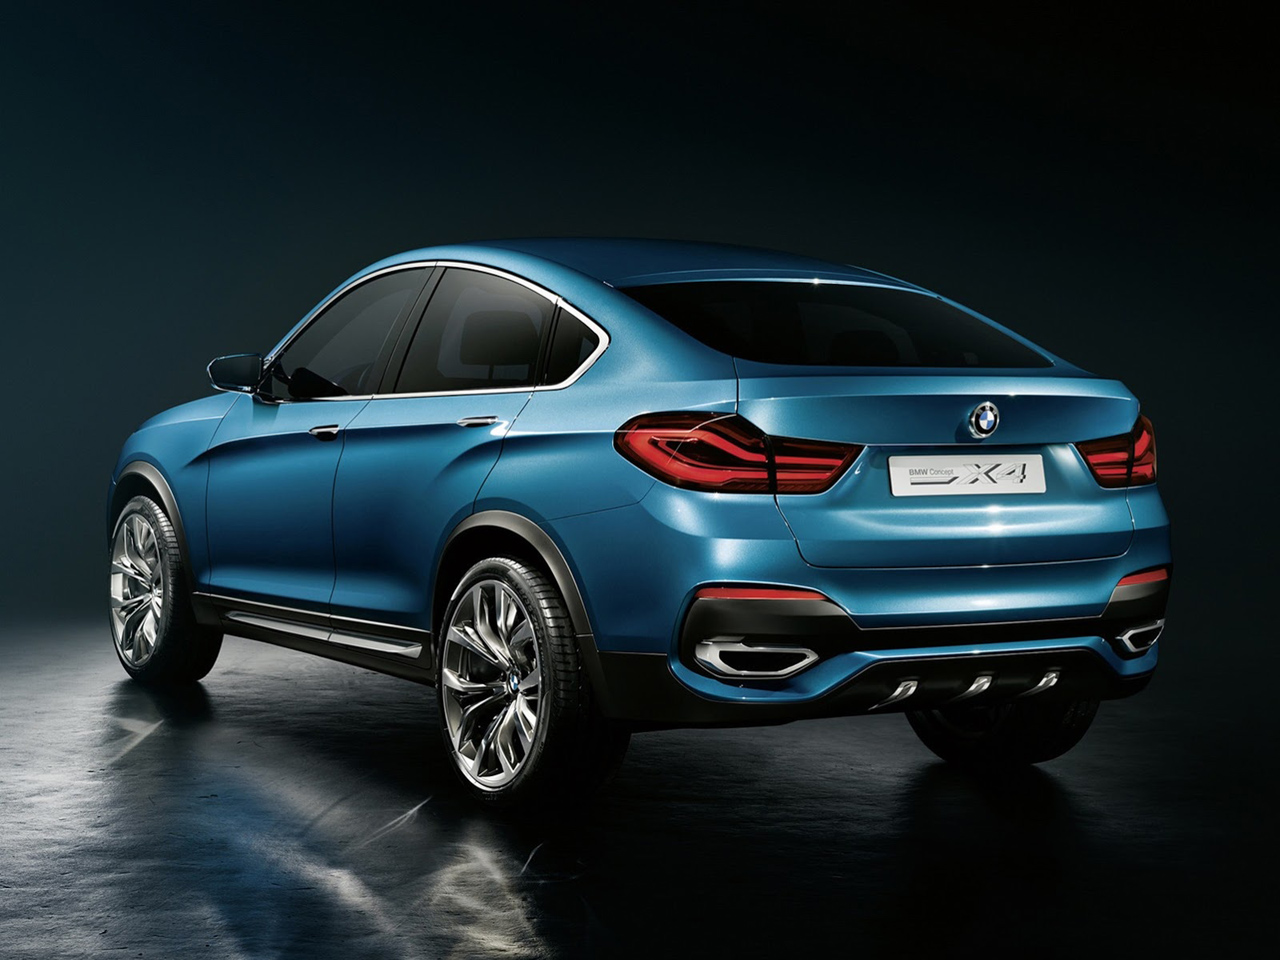 bmw x4 concept revealed. Black Bedroom Furniture Sets. Home Design Ideas